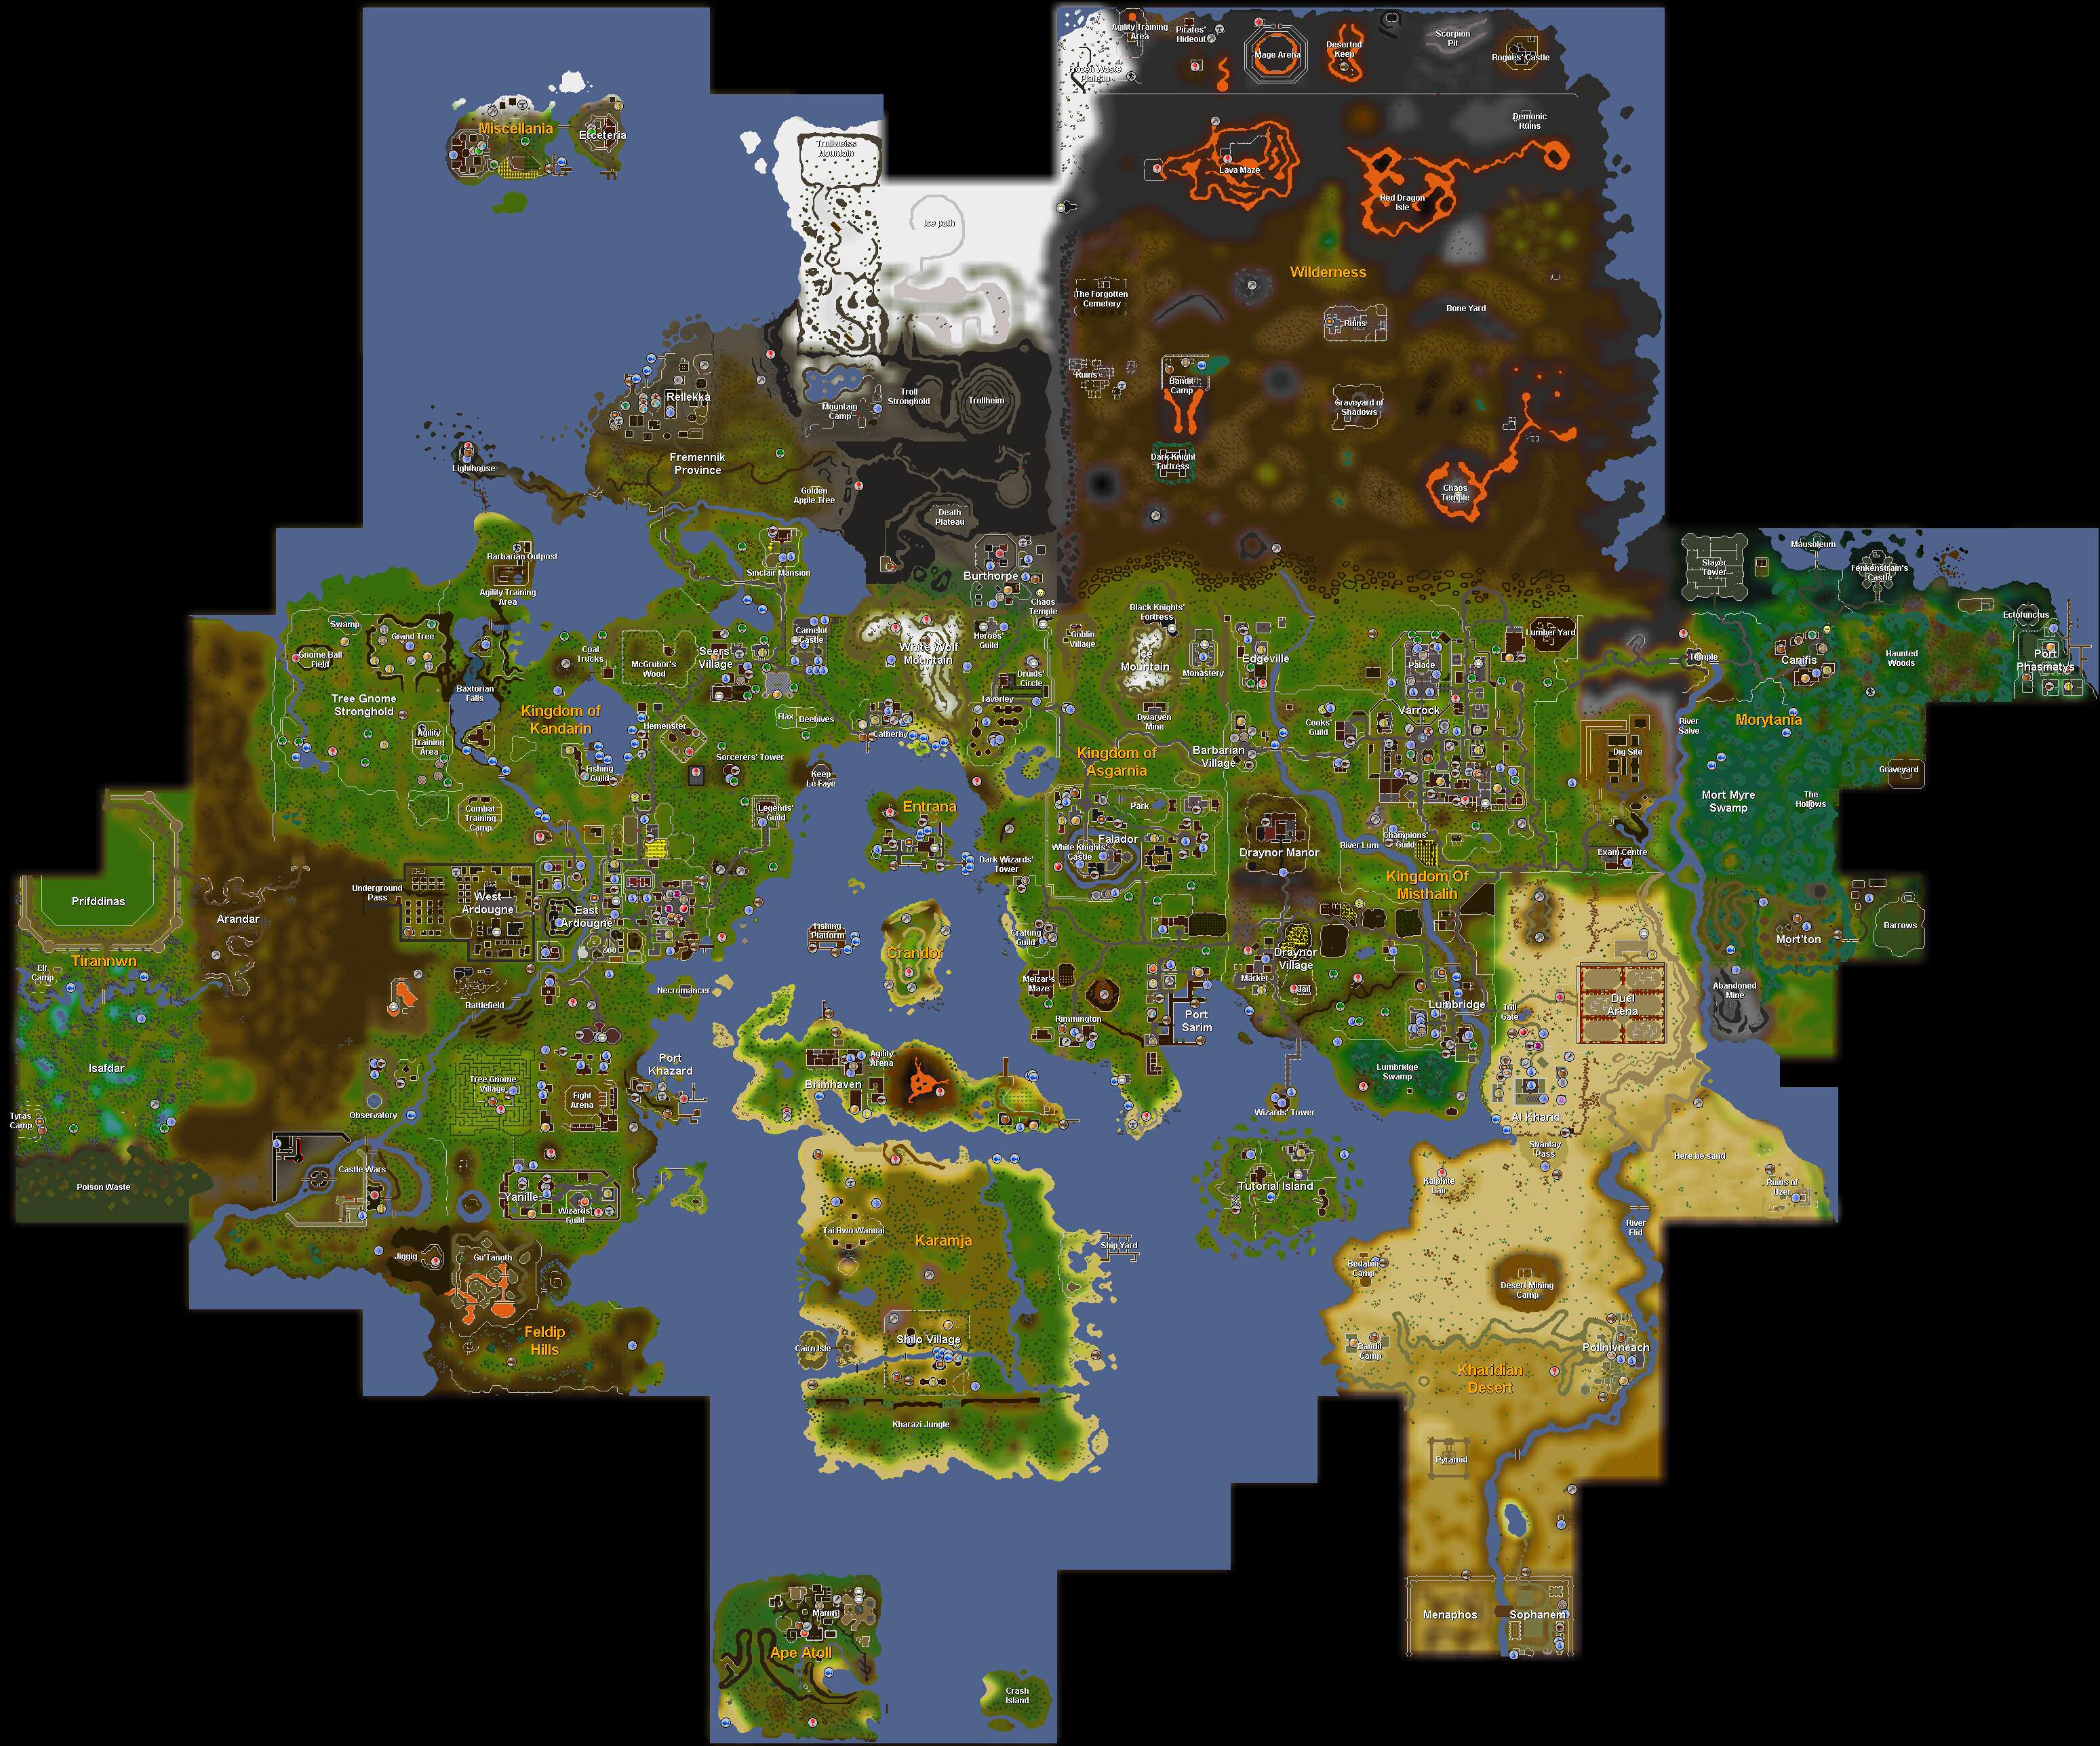 World maphistory runescape wiki fandom powered by wikia publicscrutiny Images